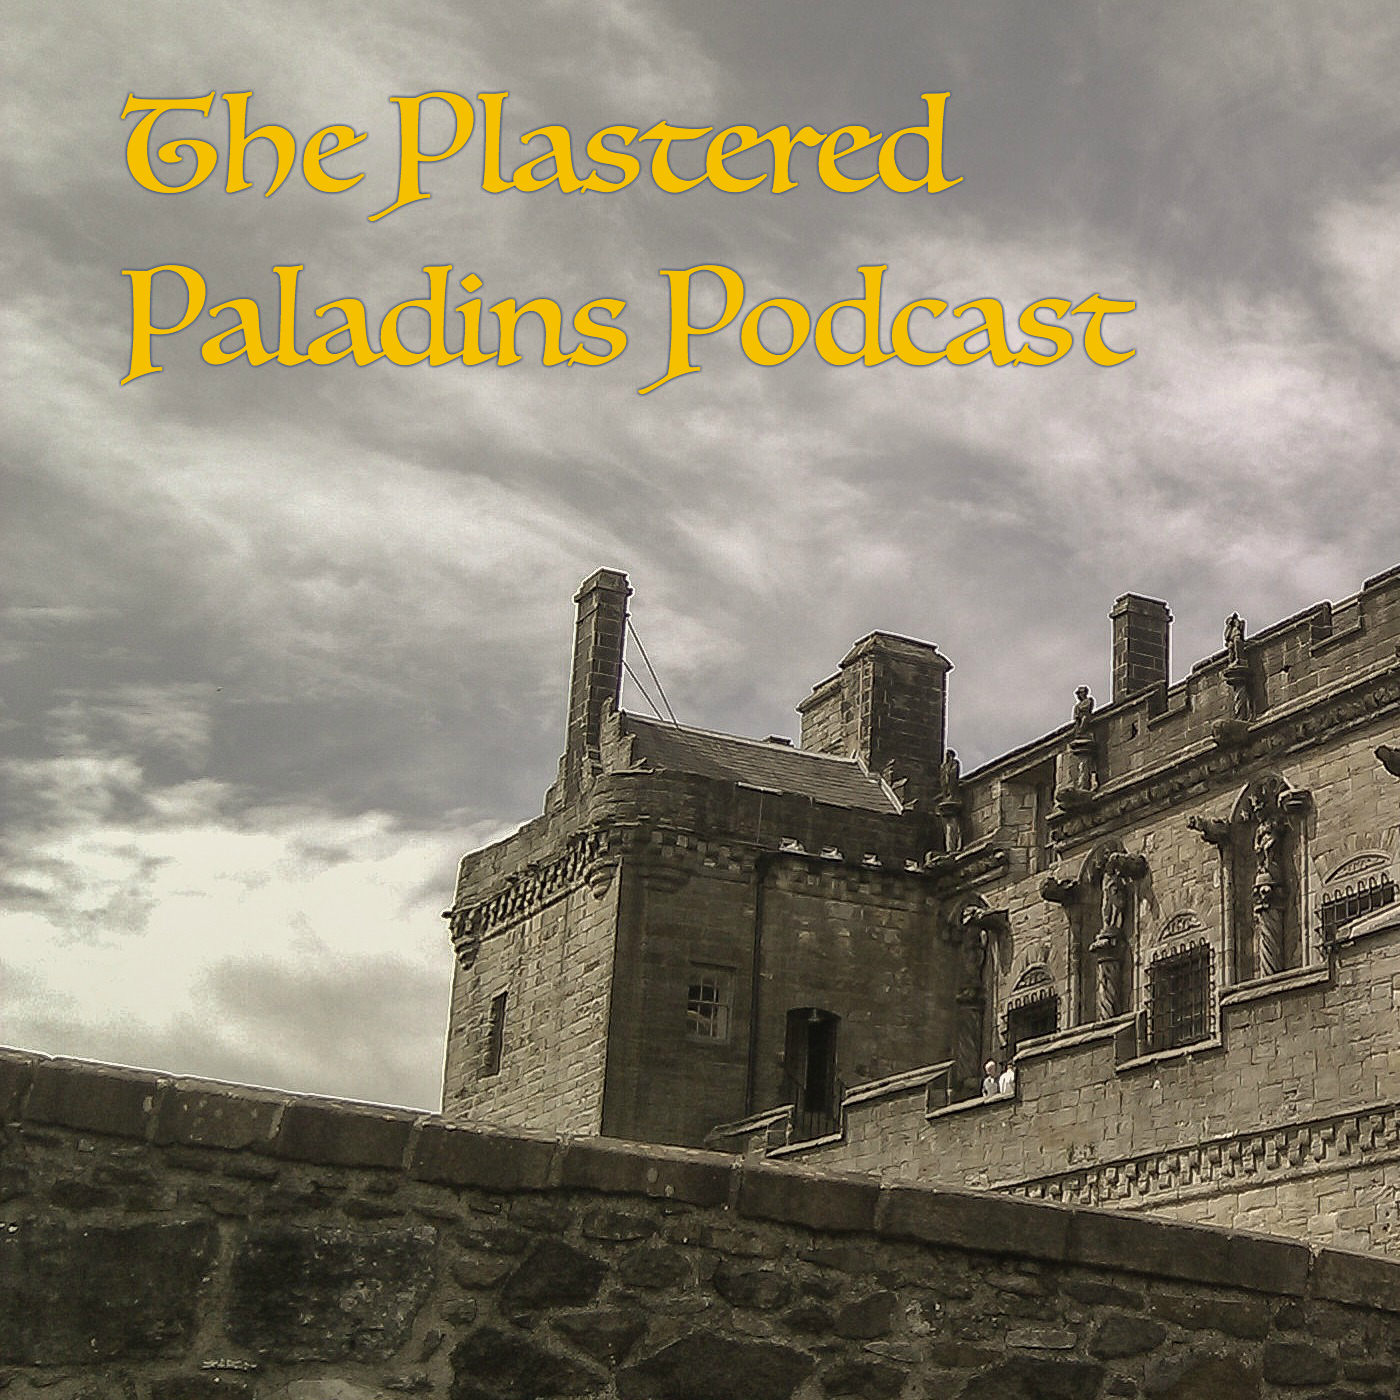 The Plastered Paladins Episode 6: Carrie Fisher and Geese